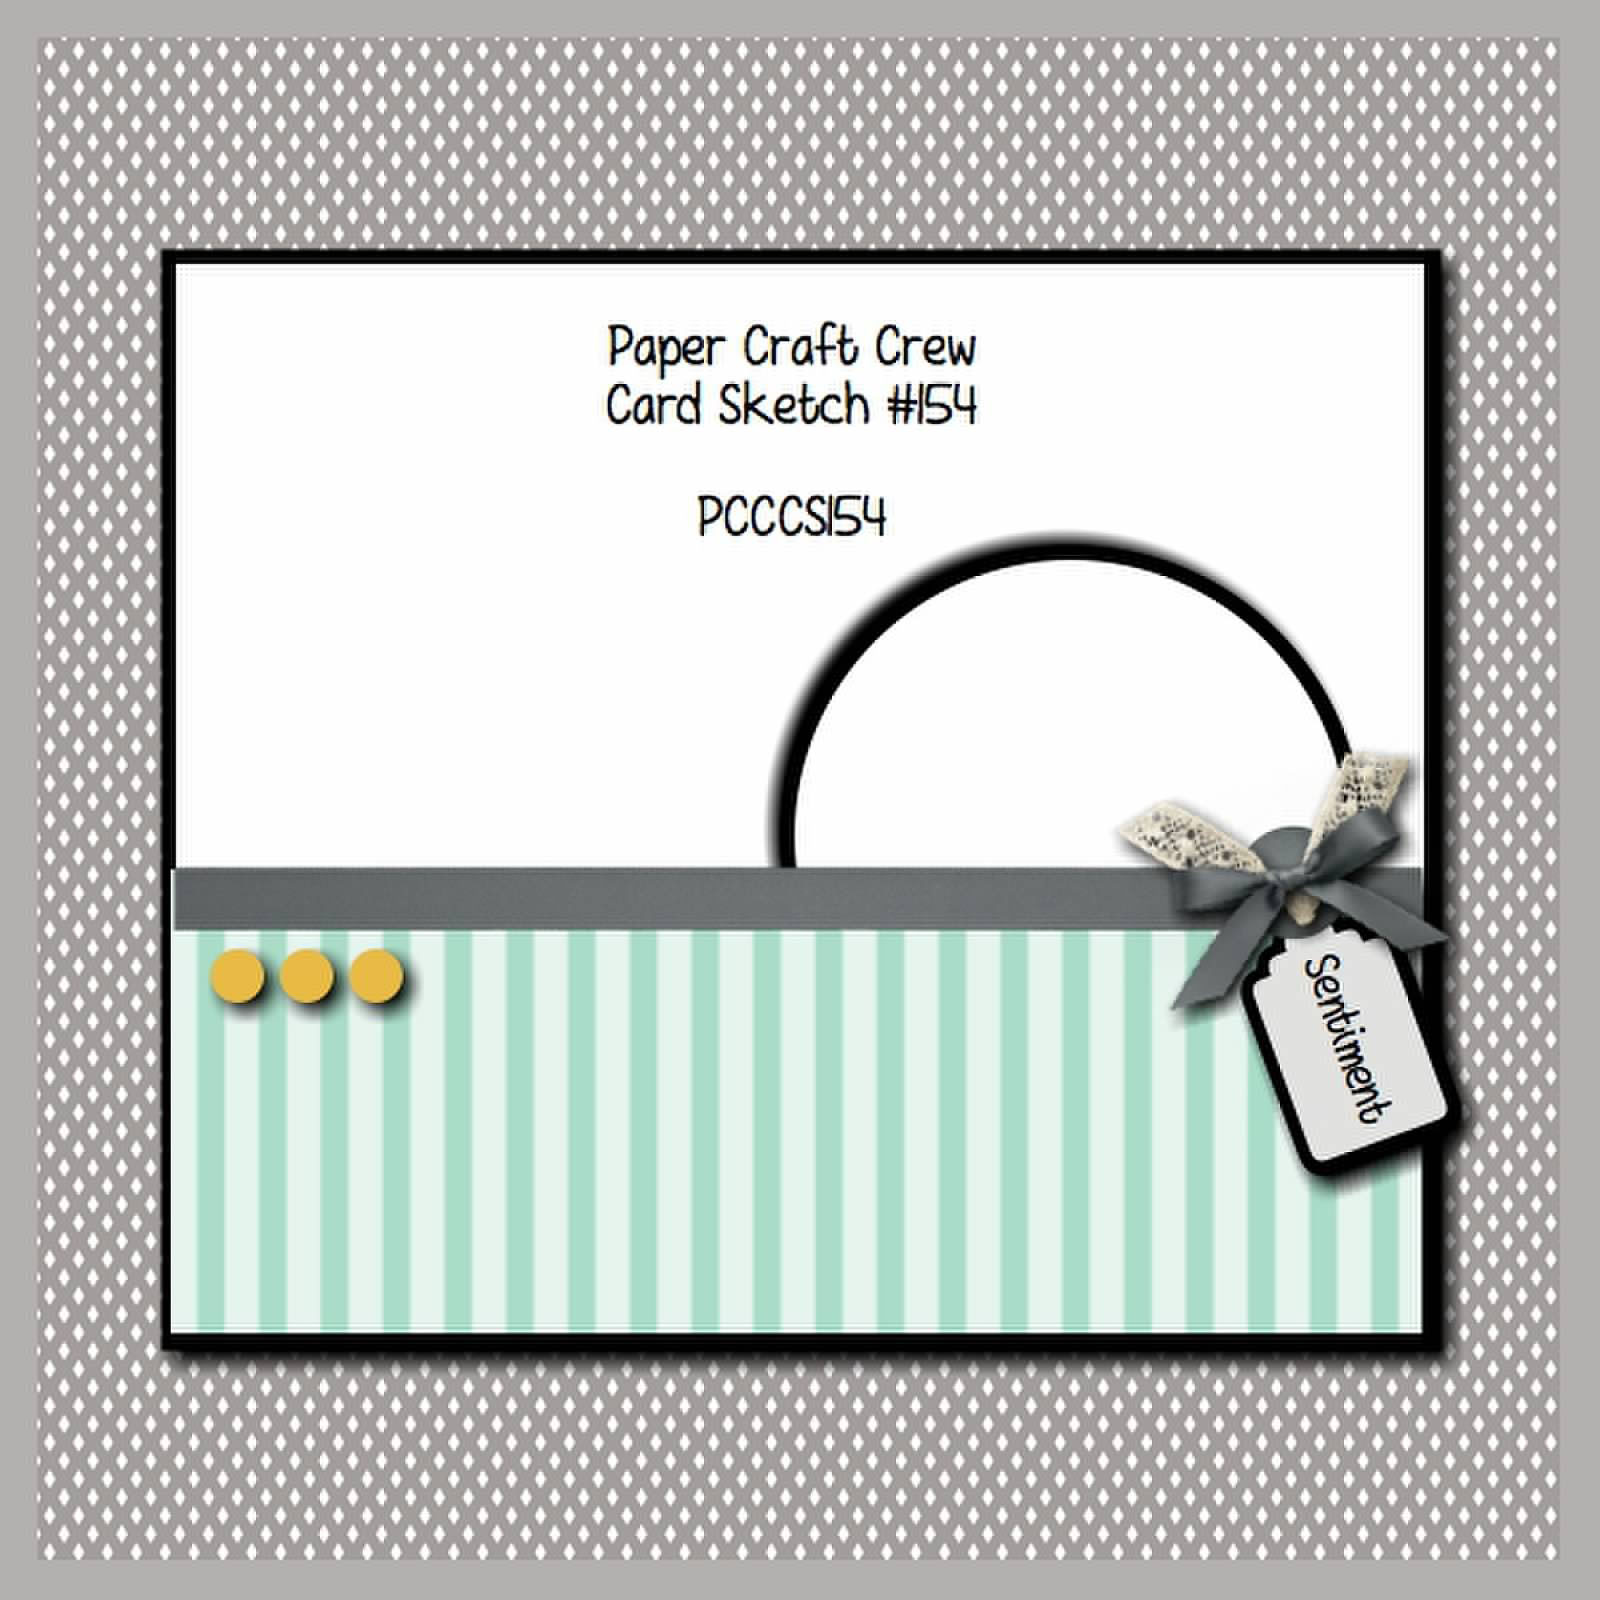 Masculine card with paper craft crew sketch 154 from stamping imperfectio